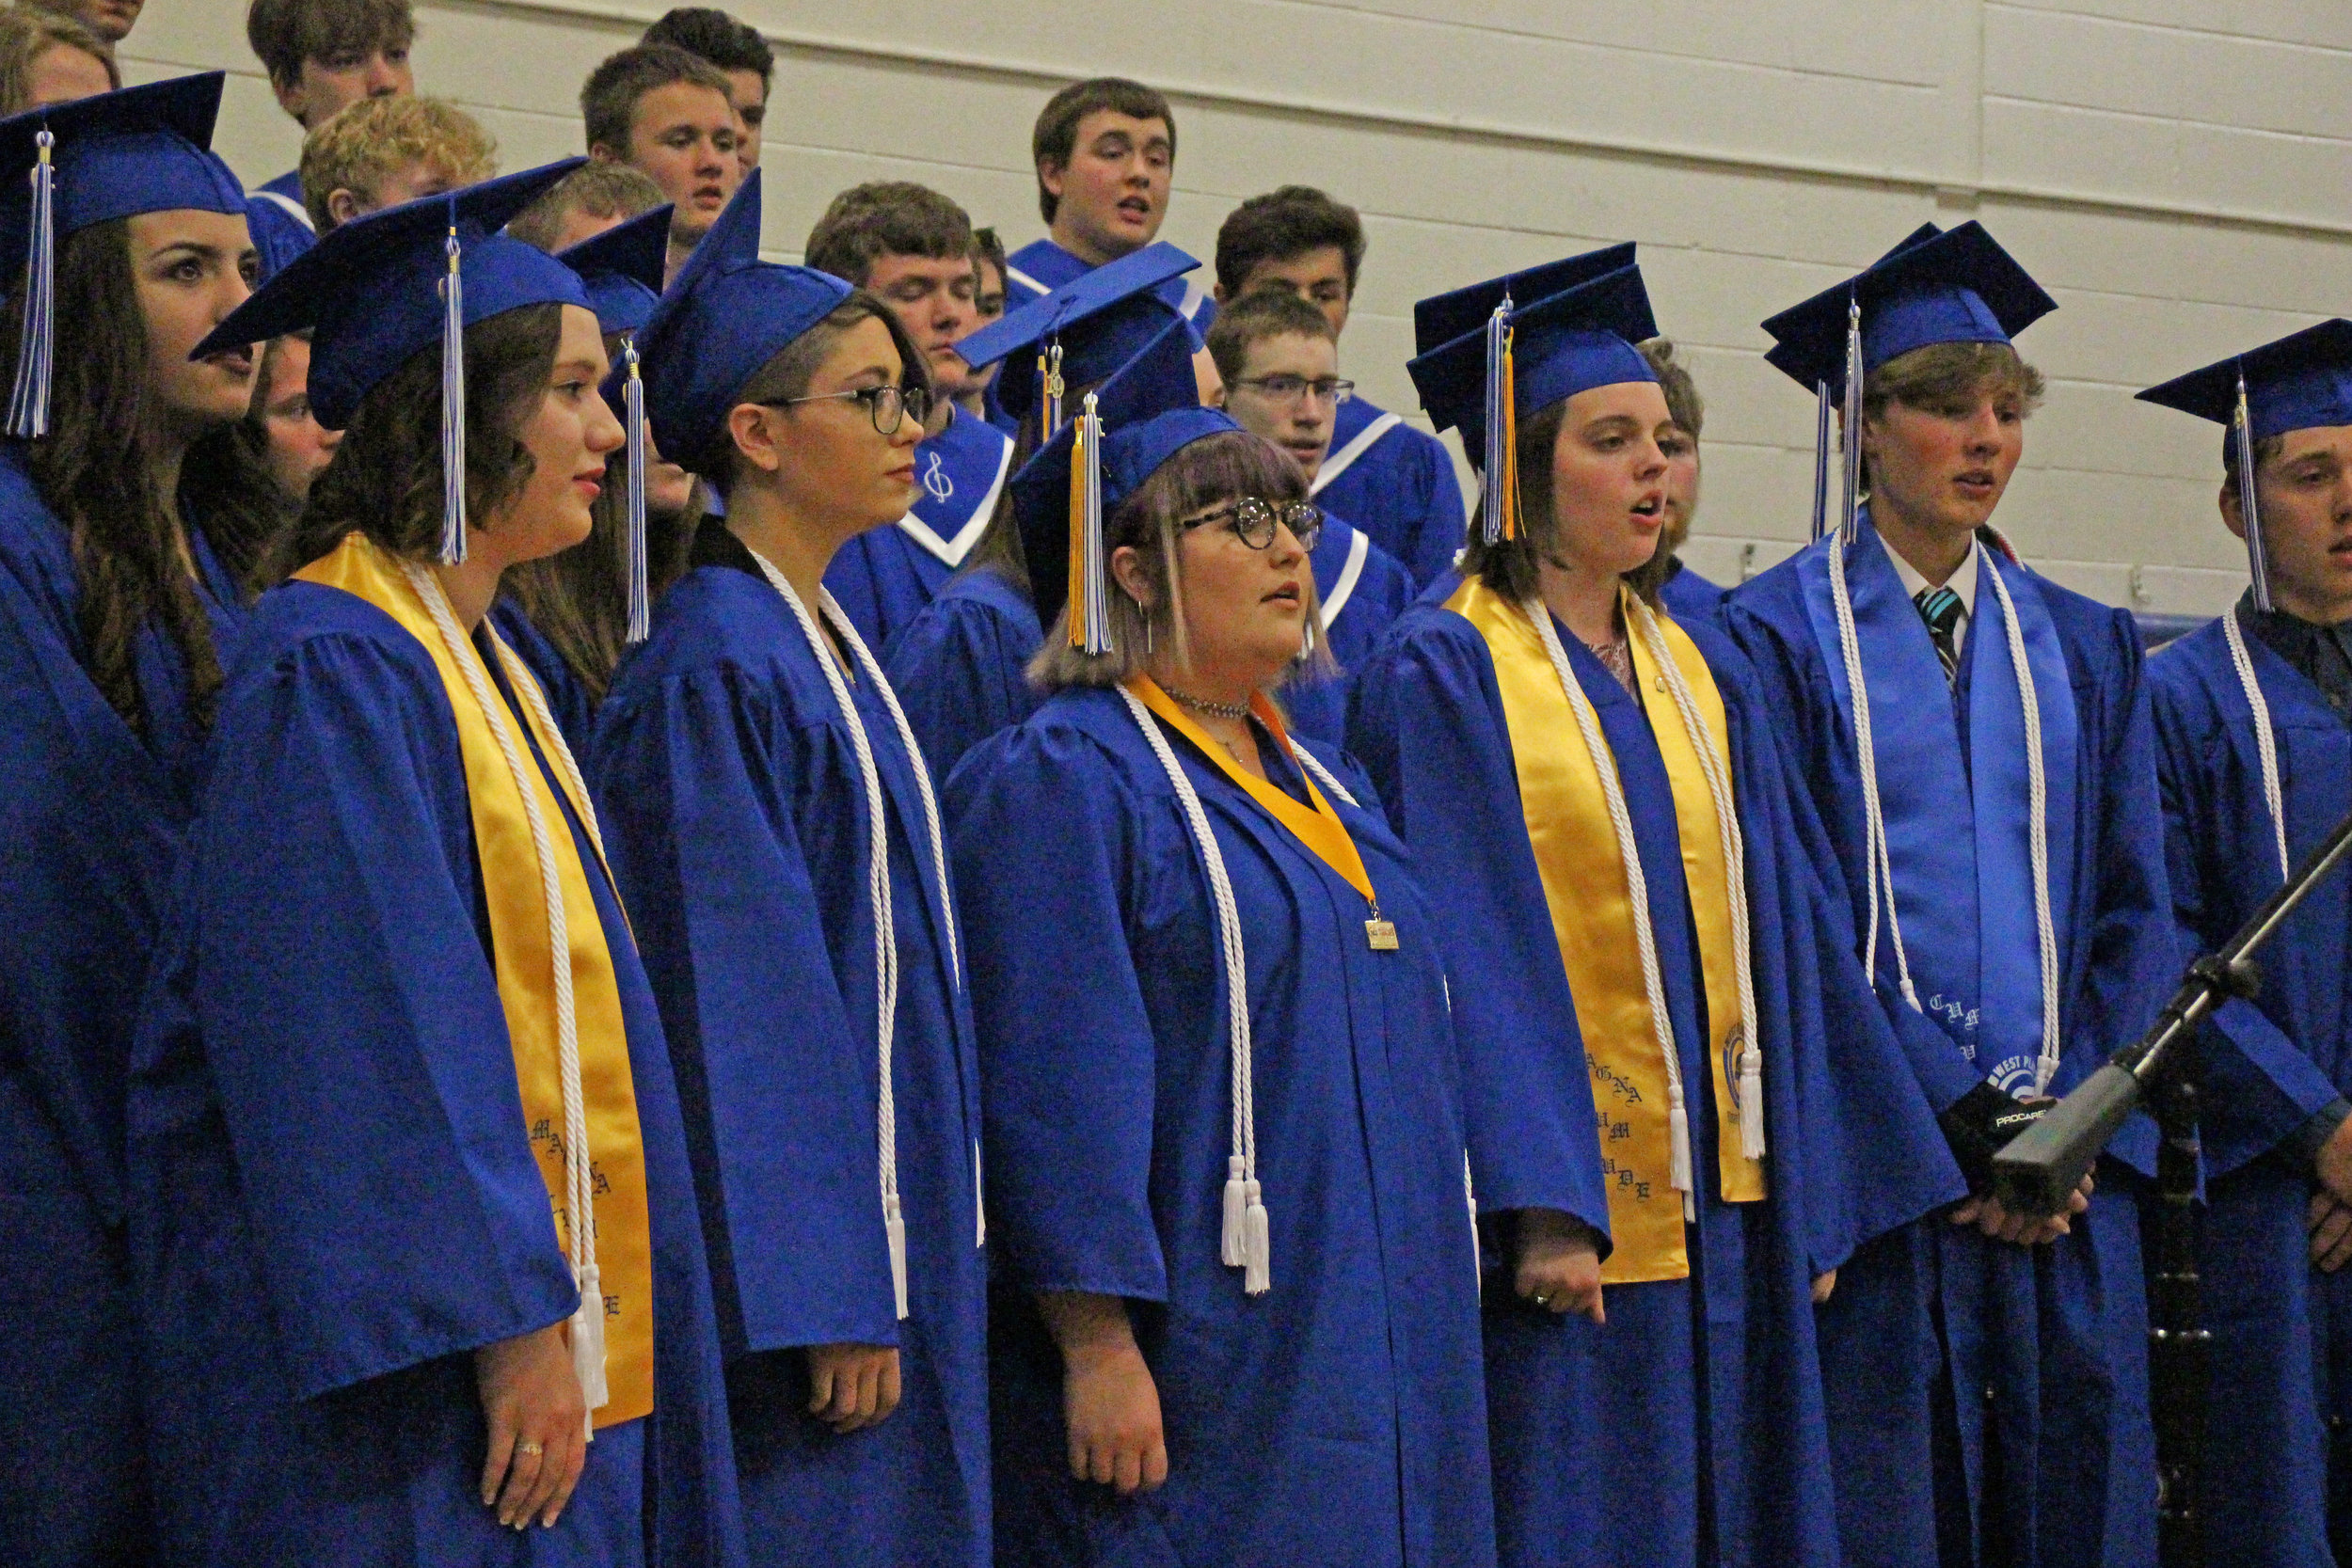 West Platte High School's senior class graduated at a ceremony held Sunday, May 19 at the high school in Weston. The high school choir performed 'Gone, Gone, Gone' prior to the presentation of diplomas. Members of the board of education took turns presenting the diplomas.